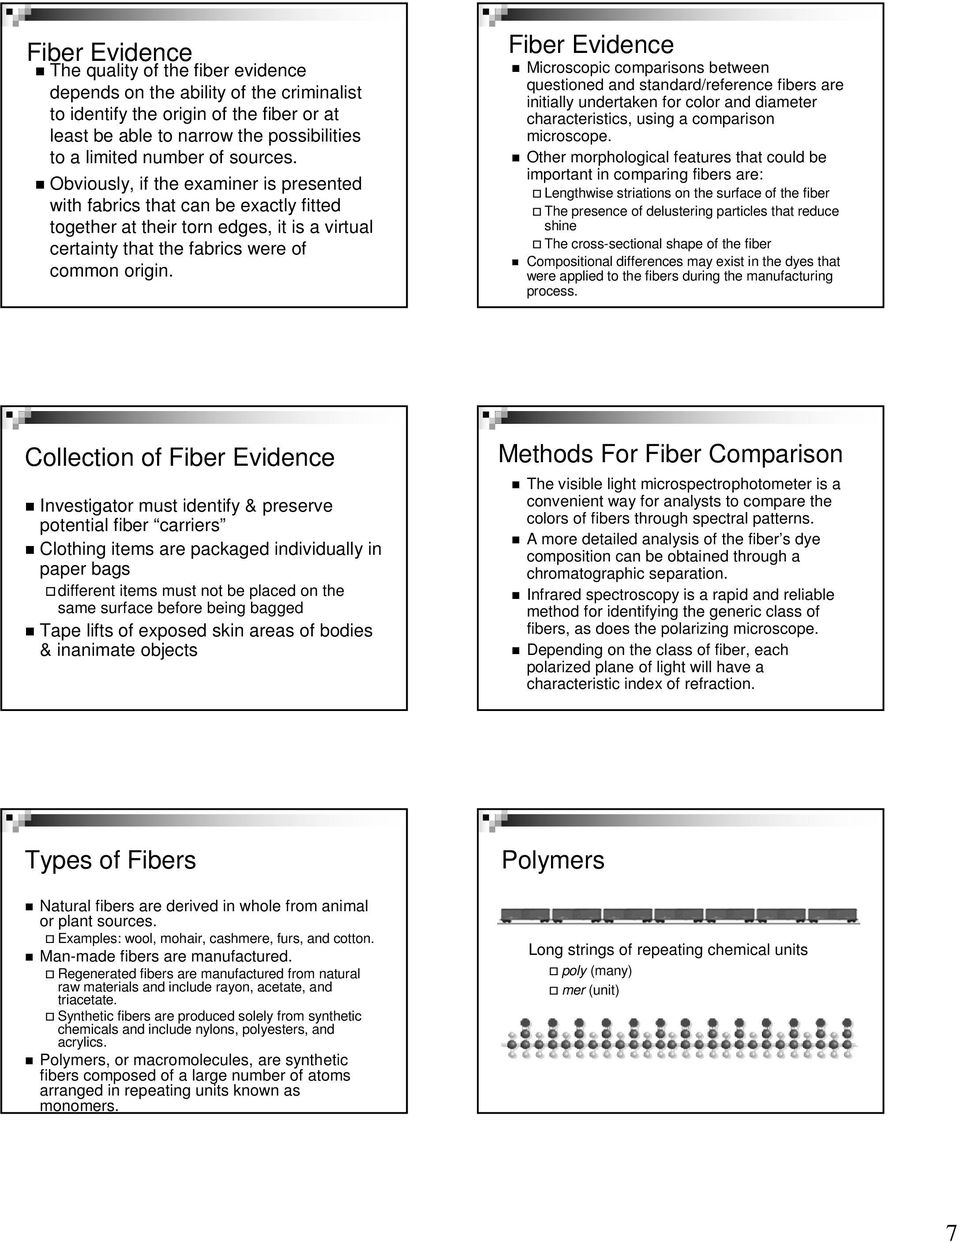 Fiber Evidence Microscopic comparisons between questioned and standard/reference fibers are initially undertaken for color and diameter characteristics, using a comparison microscope.